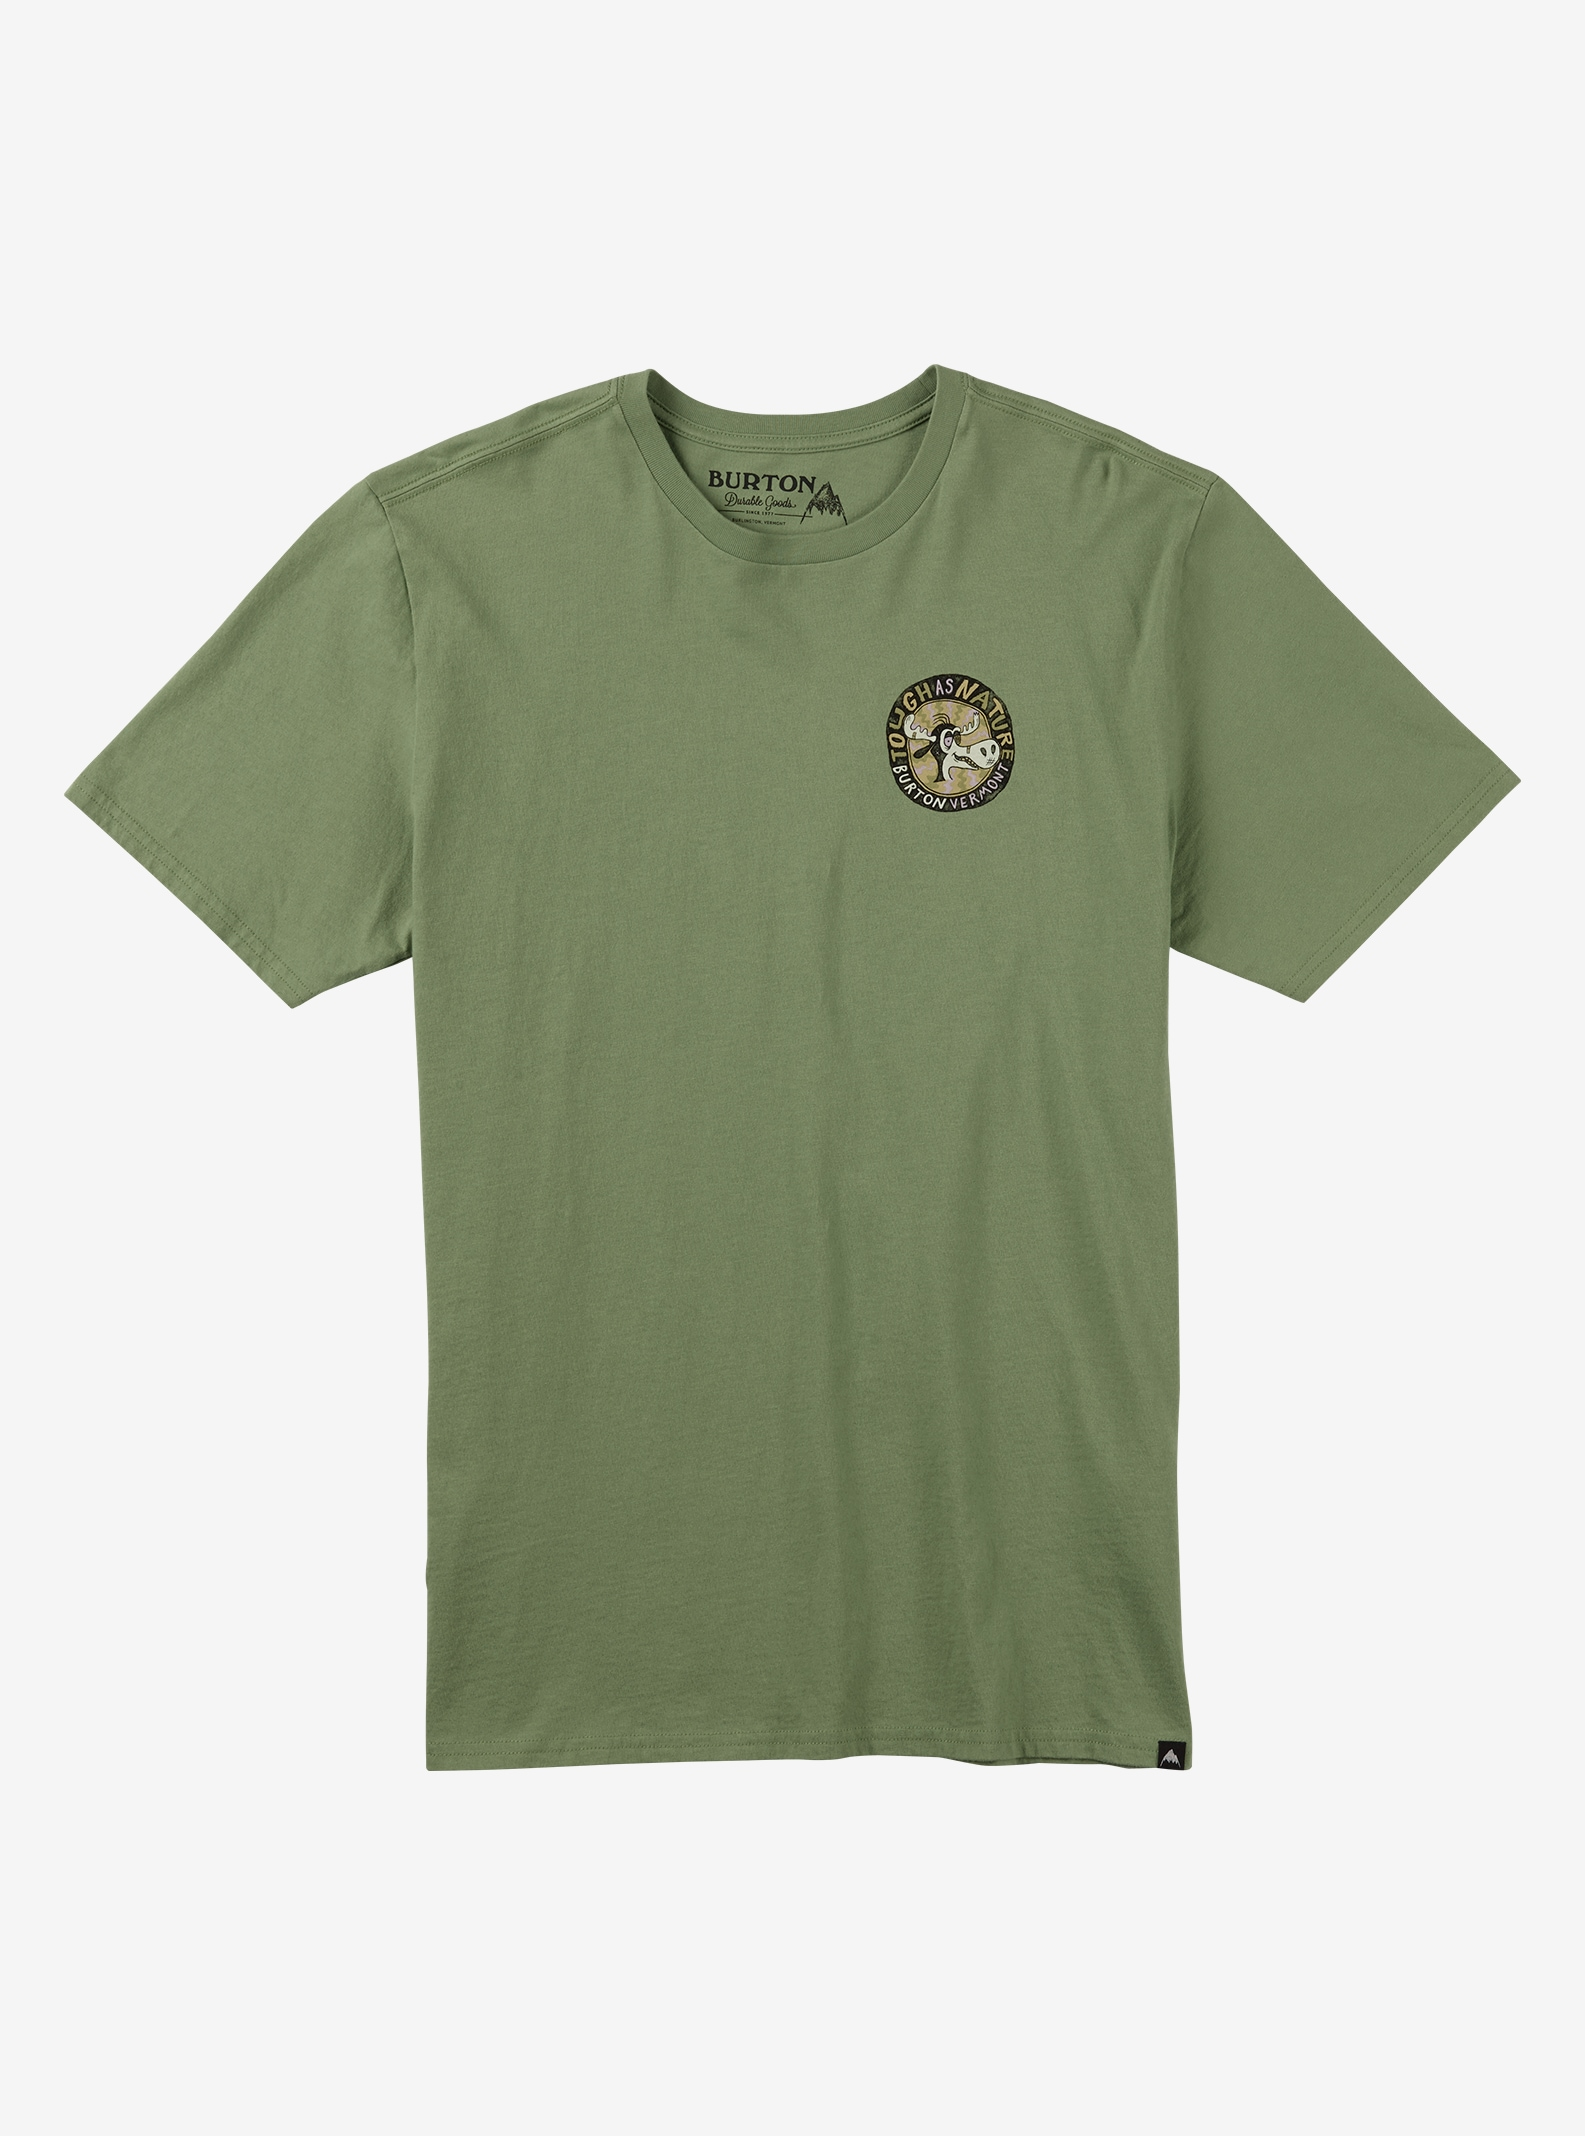 Burton Tough as Nature Short Sleeve T Shirt shown in Grass Green